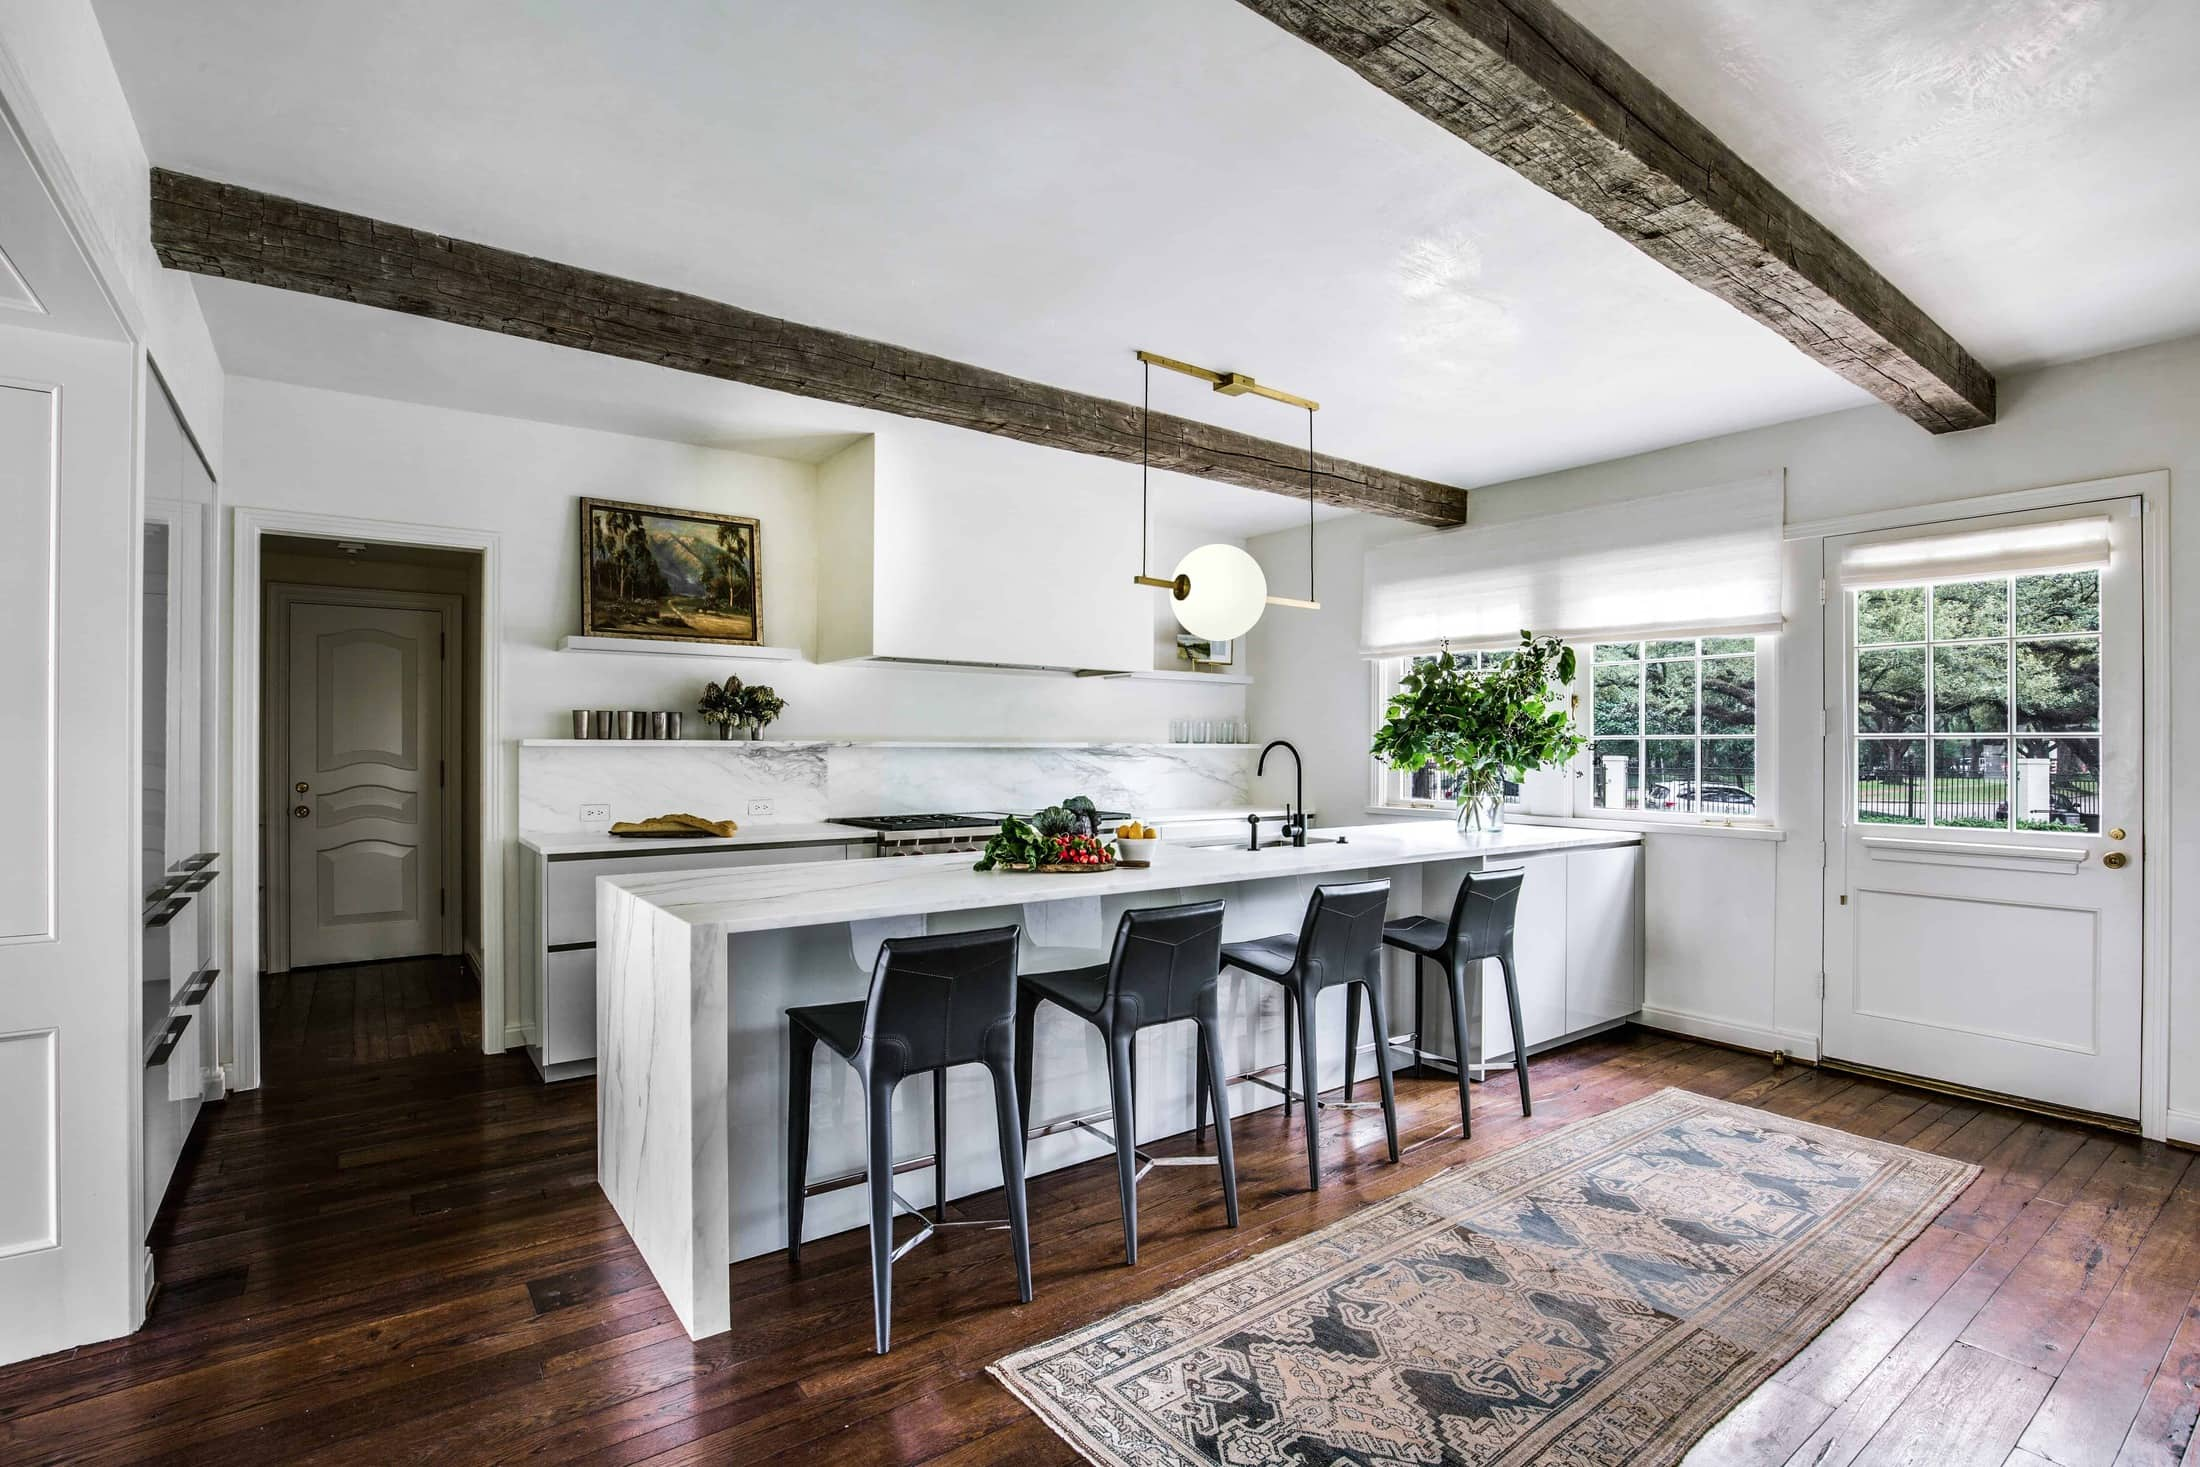 Eggersmann Kitchen Part of a Remodel Featured in LuxeDaily